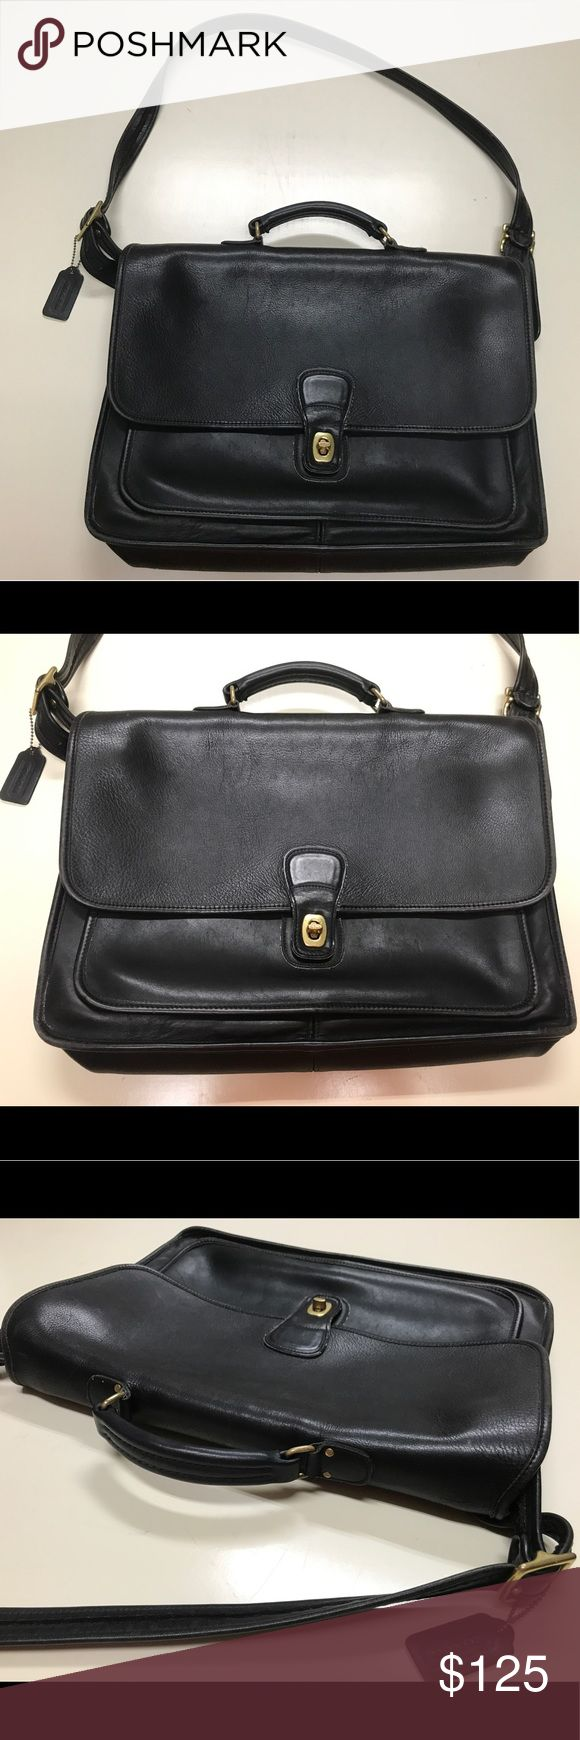 Vintage Coach Black Leather Laptop Bag 5180 Vintage Coach briefcase/laptop bag. Handle and adjustable shoulder strap, turn lock closure, two compartments inside. Clean with no damage.  In very good condition. Smoke free home. Coach Bags